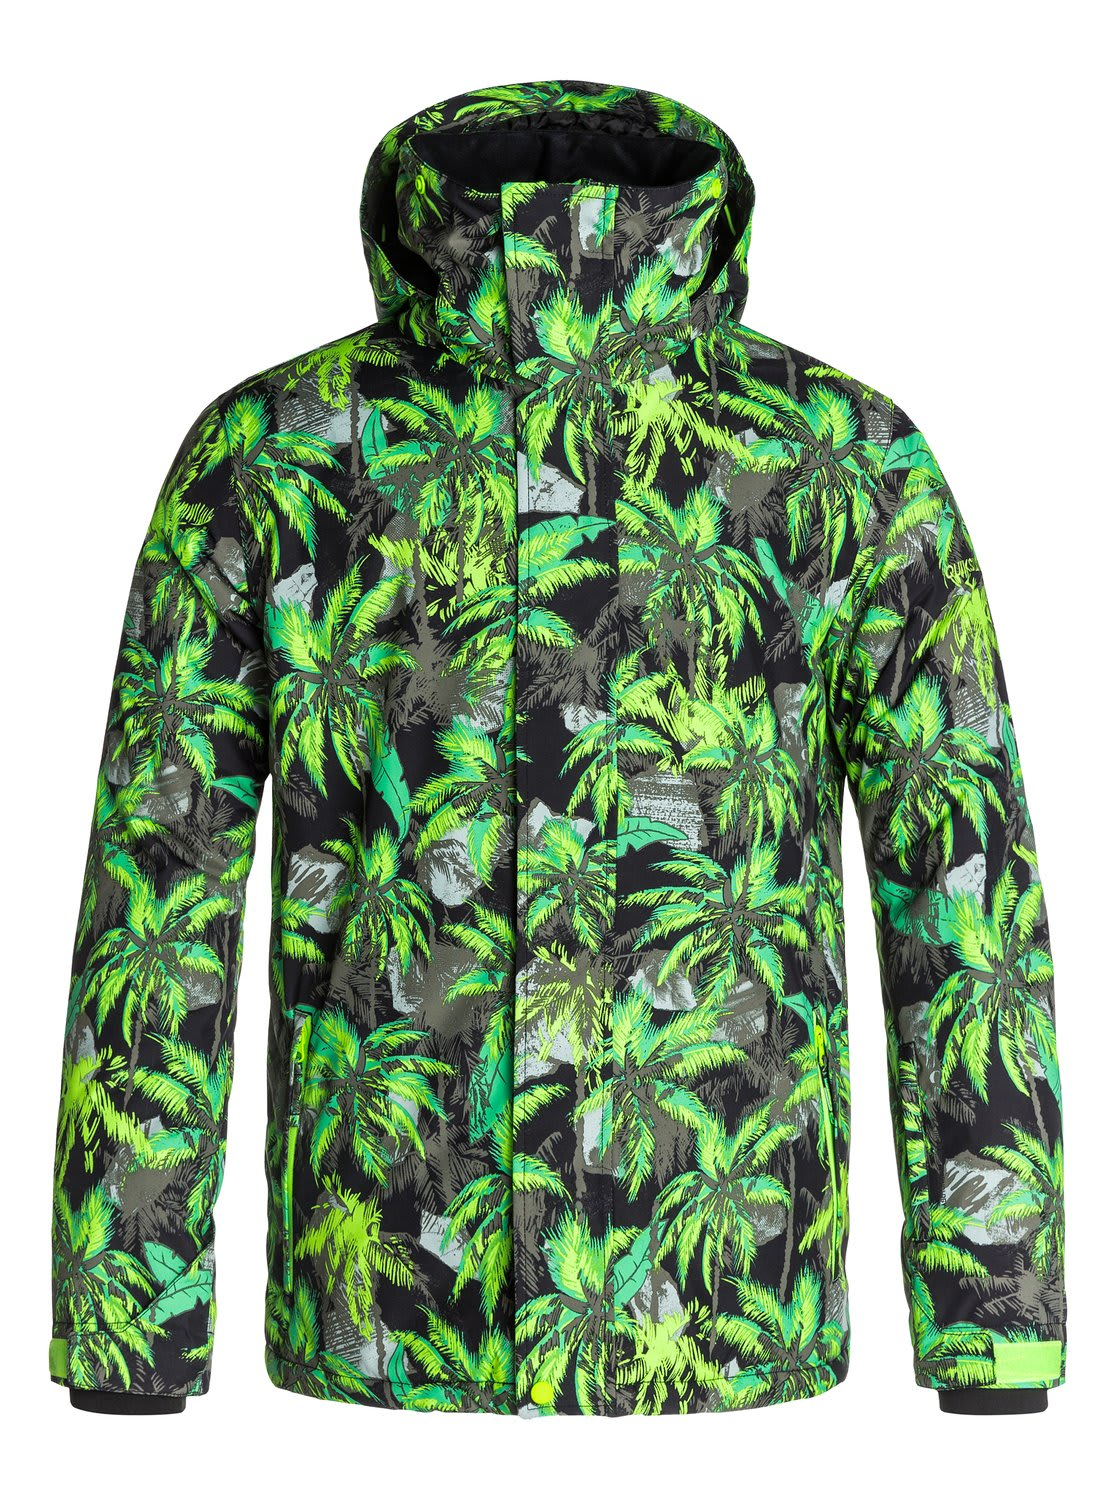 Quiksilver Mission Printed Shell Snowboard Jacket